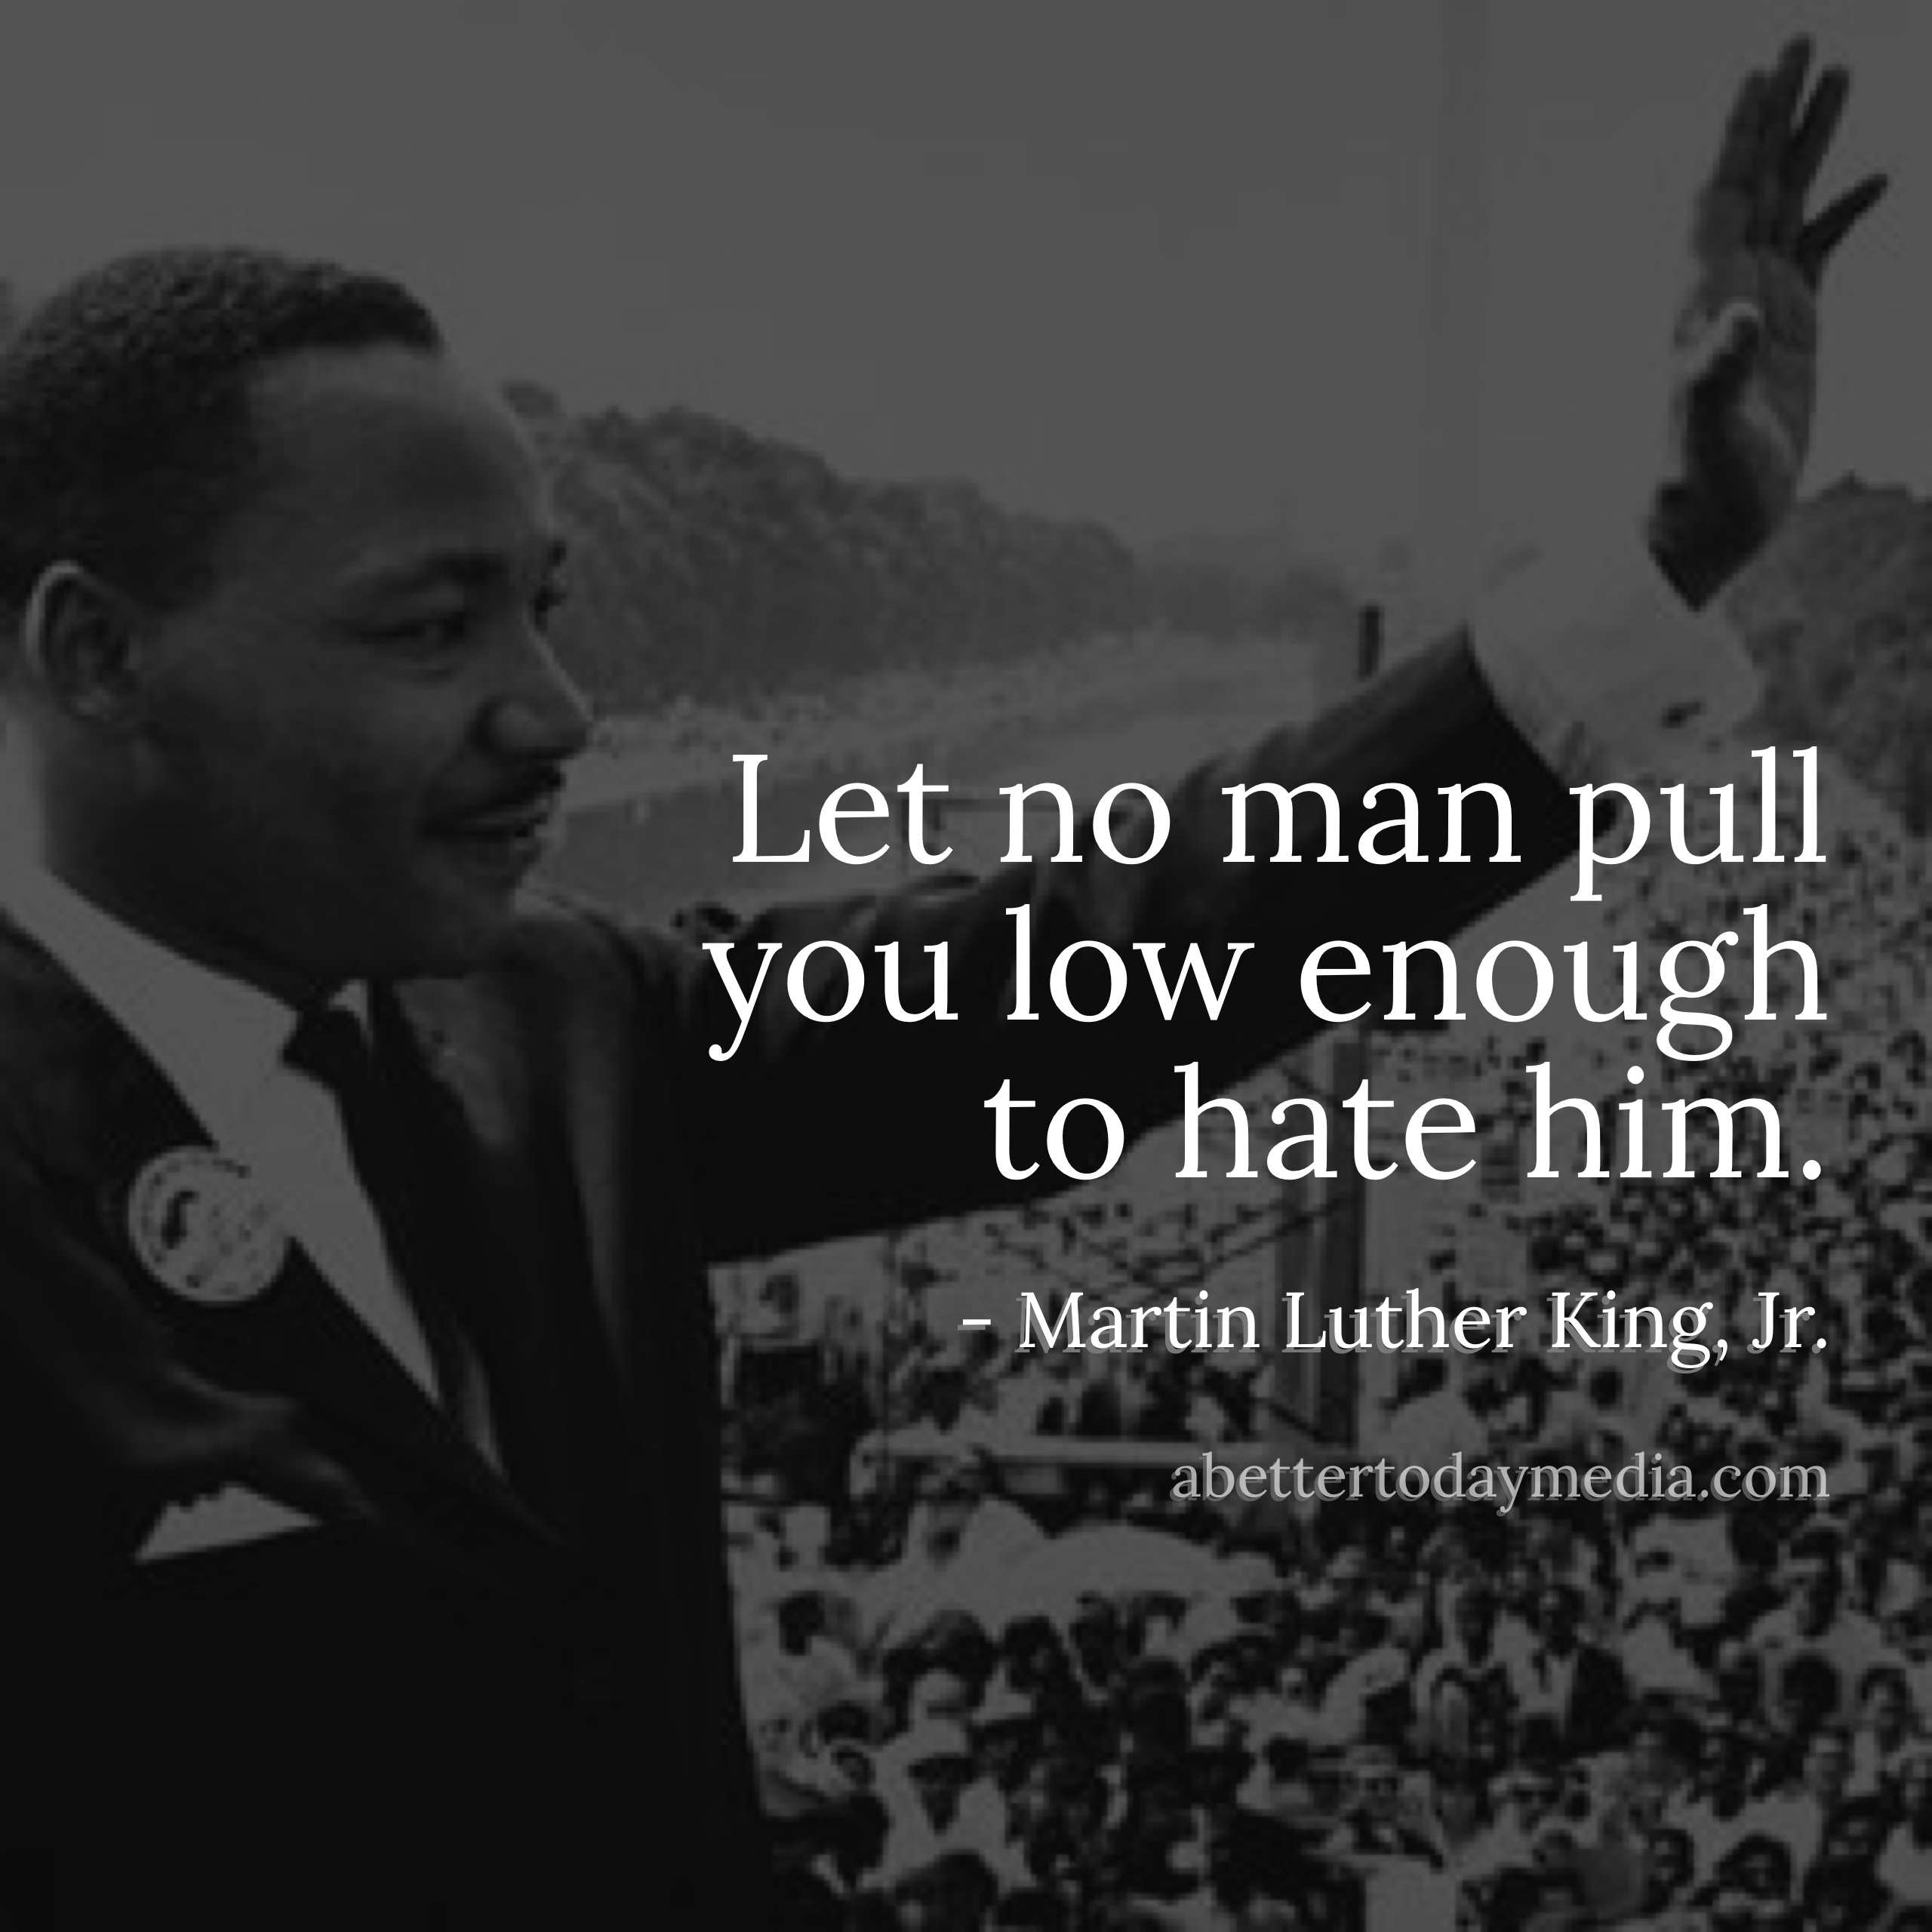 An analysis of equality and marthin luther king